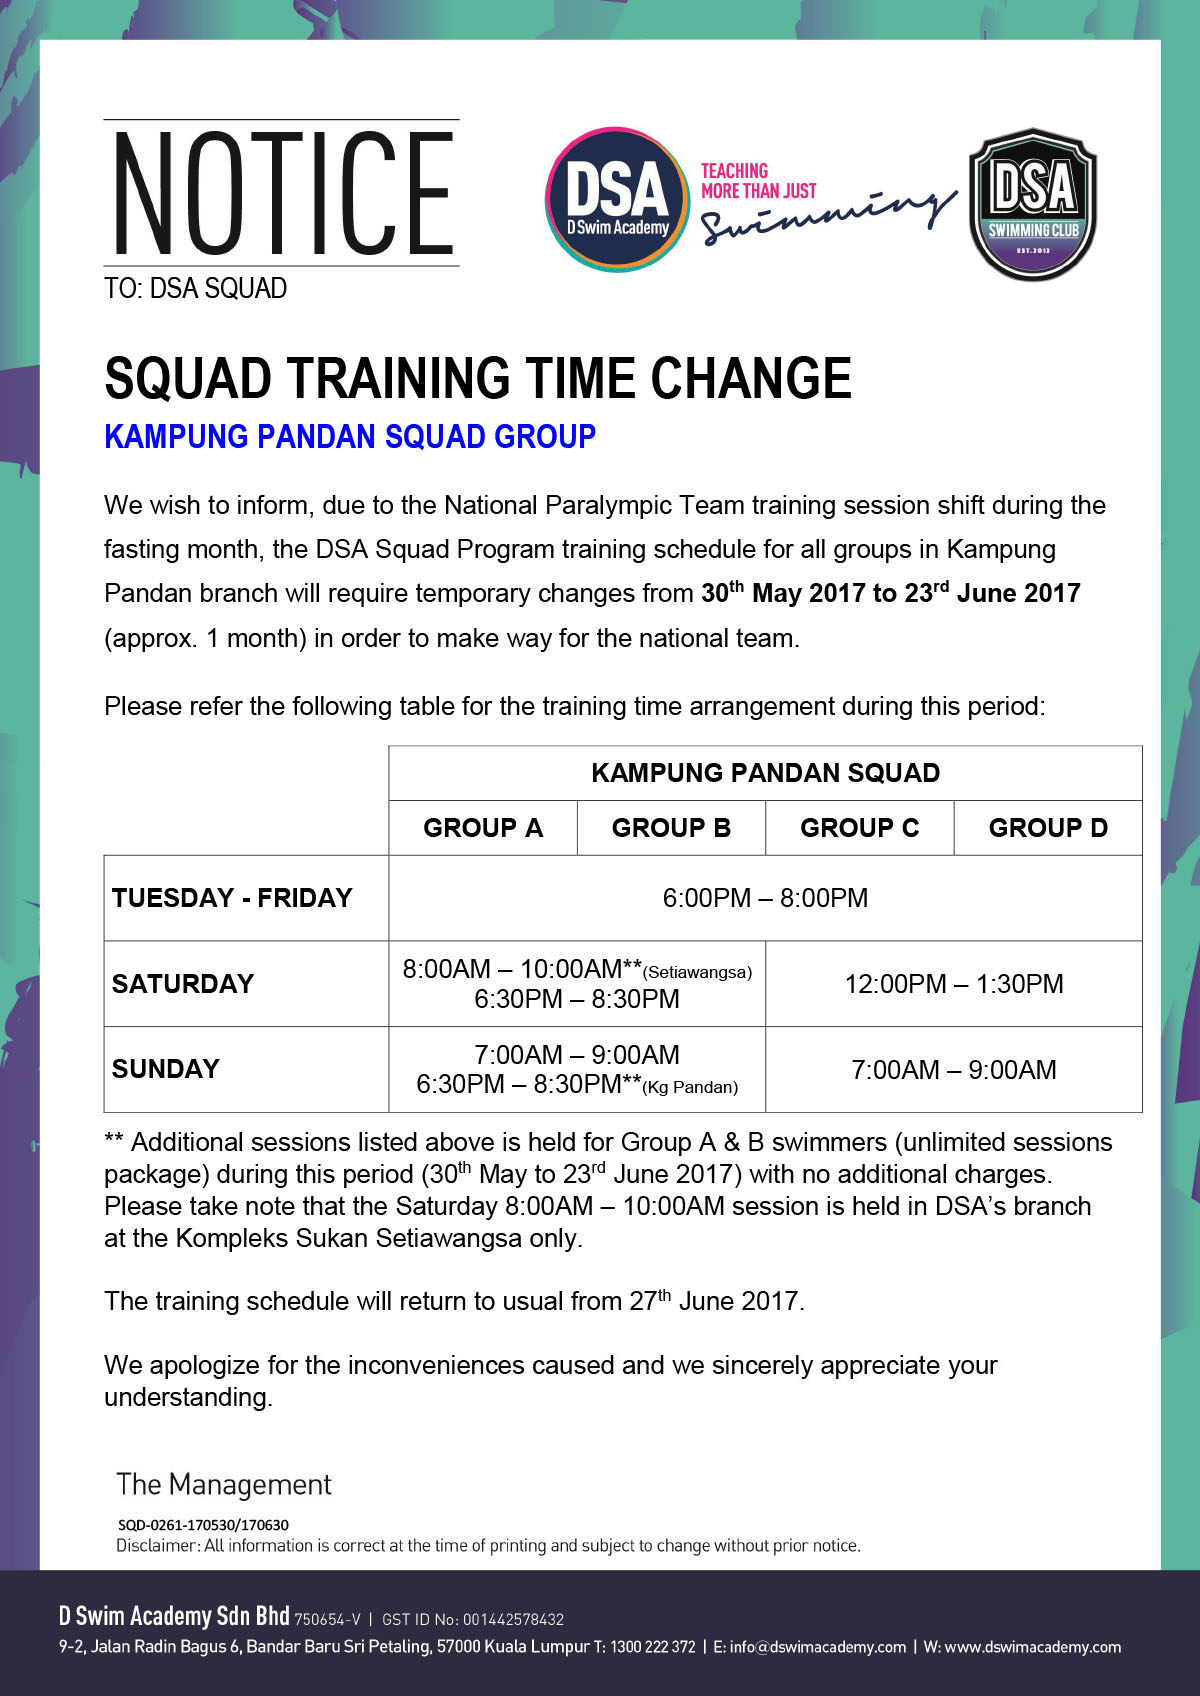 KP Squad Schedule - Fasting Month